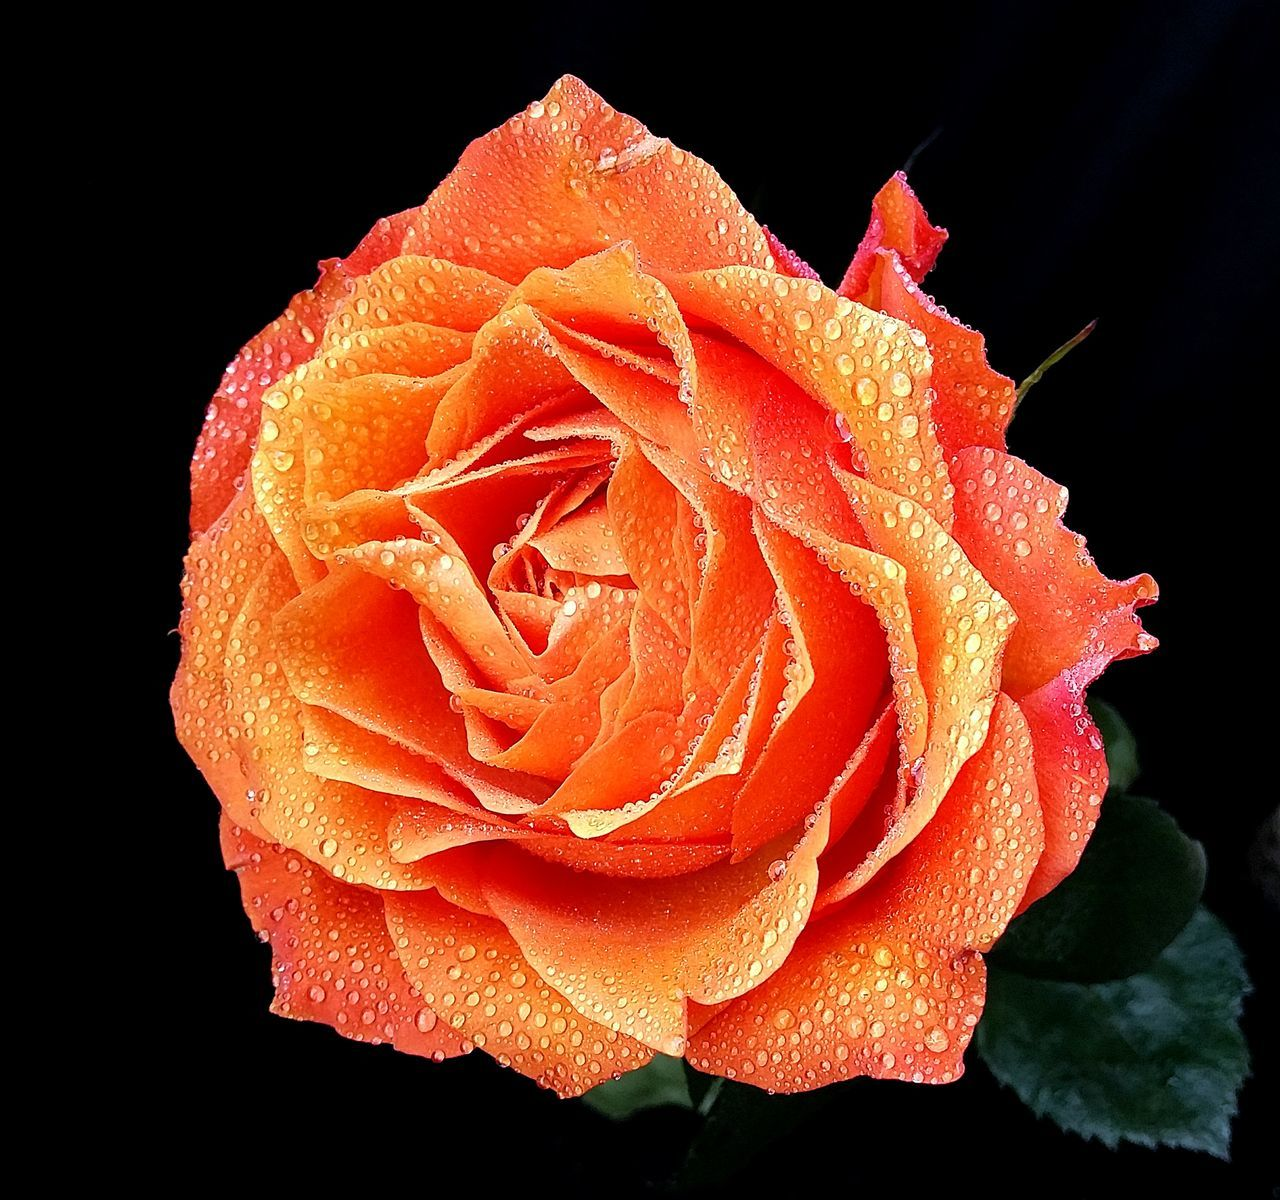 Beauty In Nature Close-up Flower Flower Head Gentle Rose Nature Orange Rose Water Drops